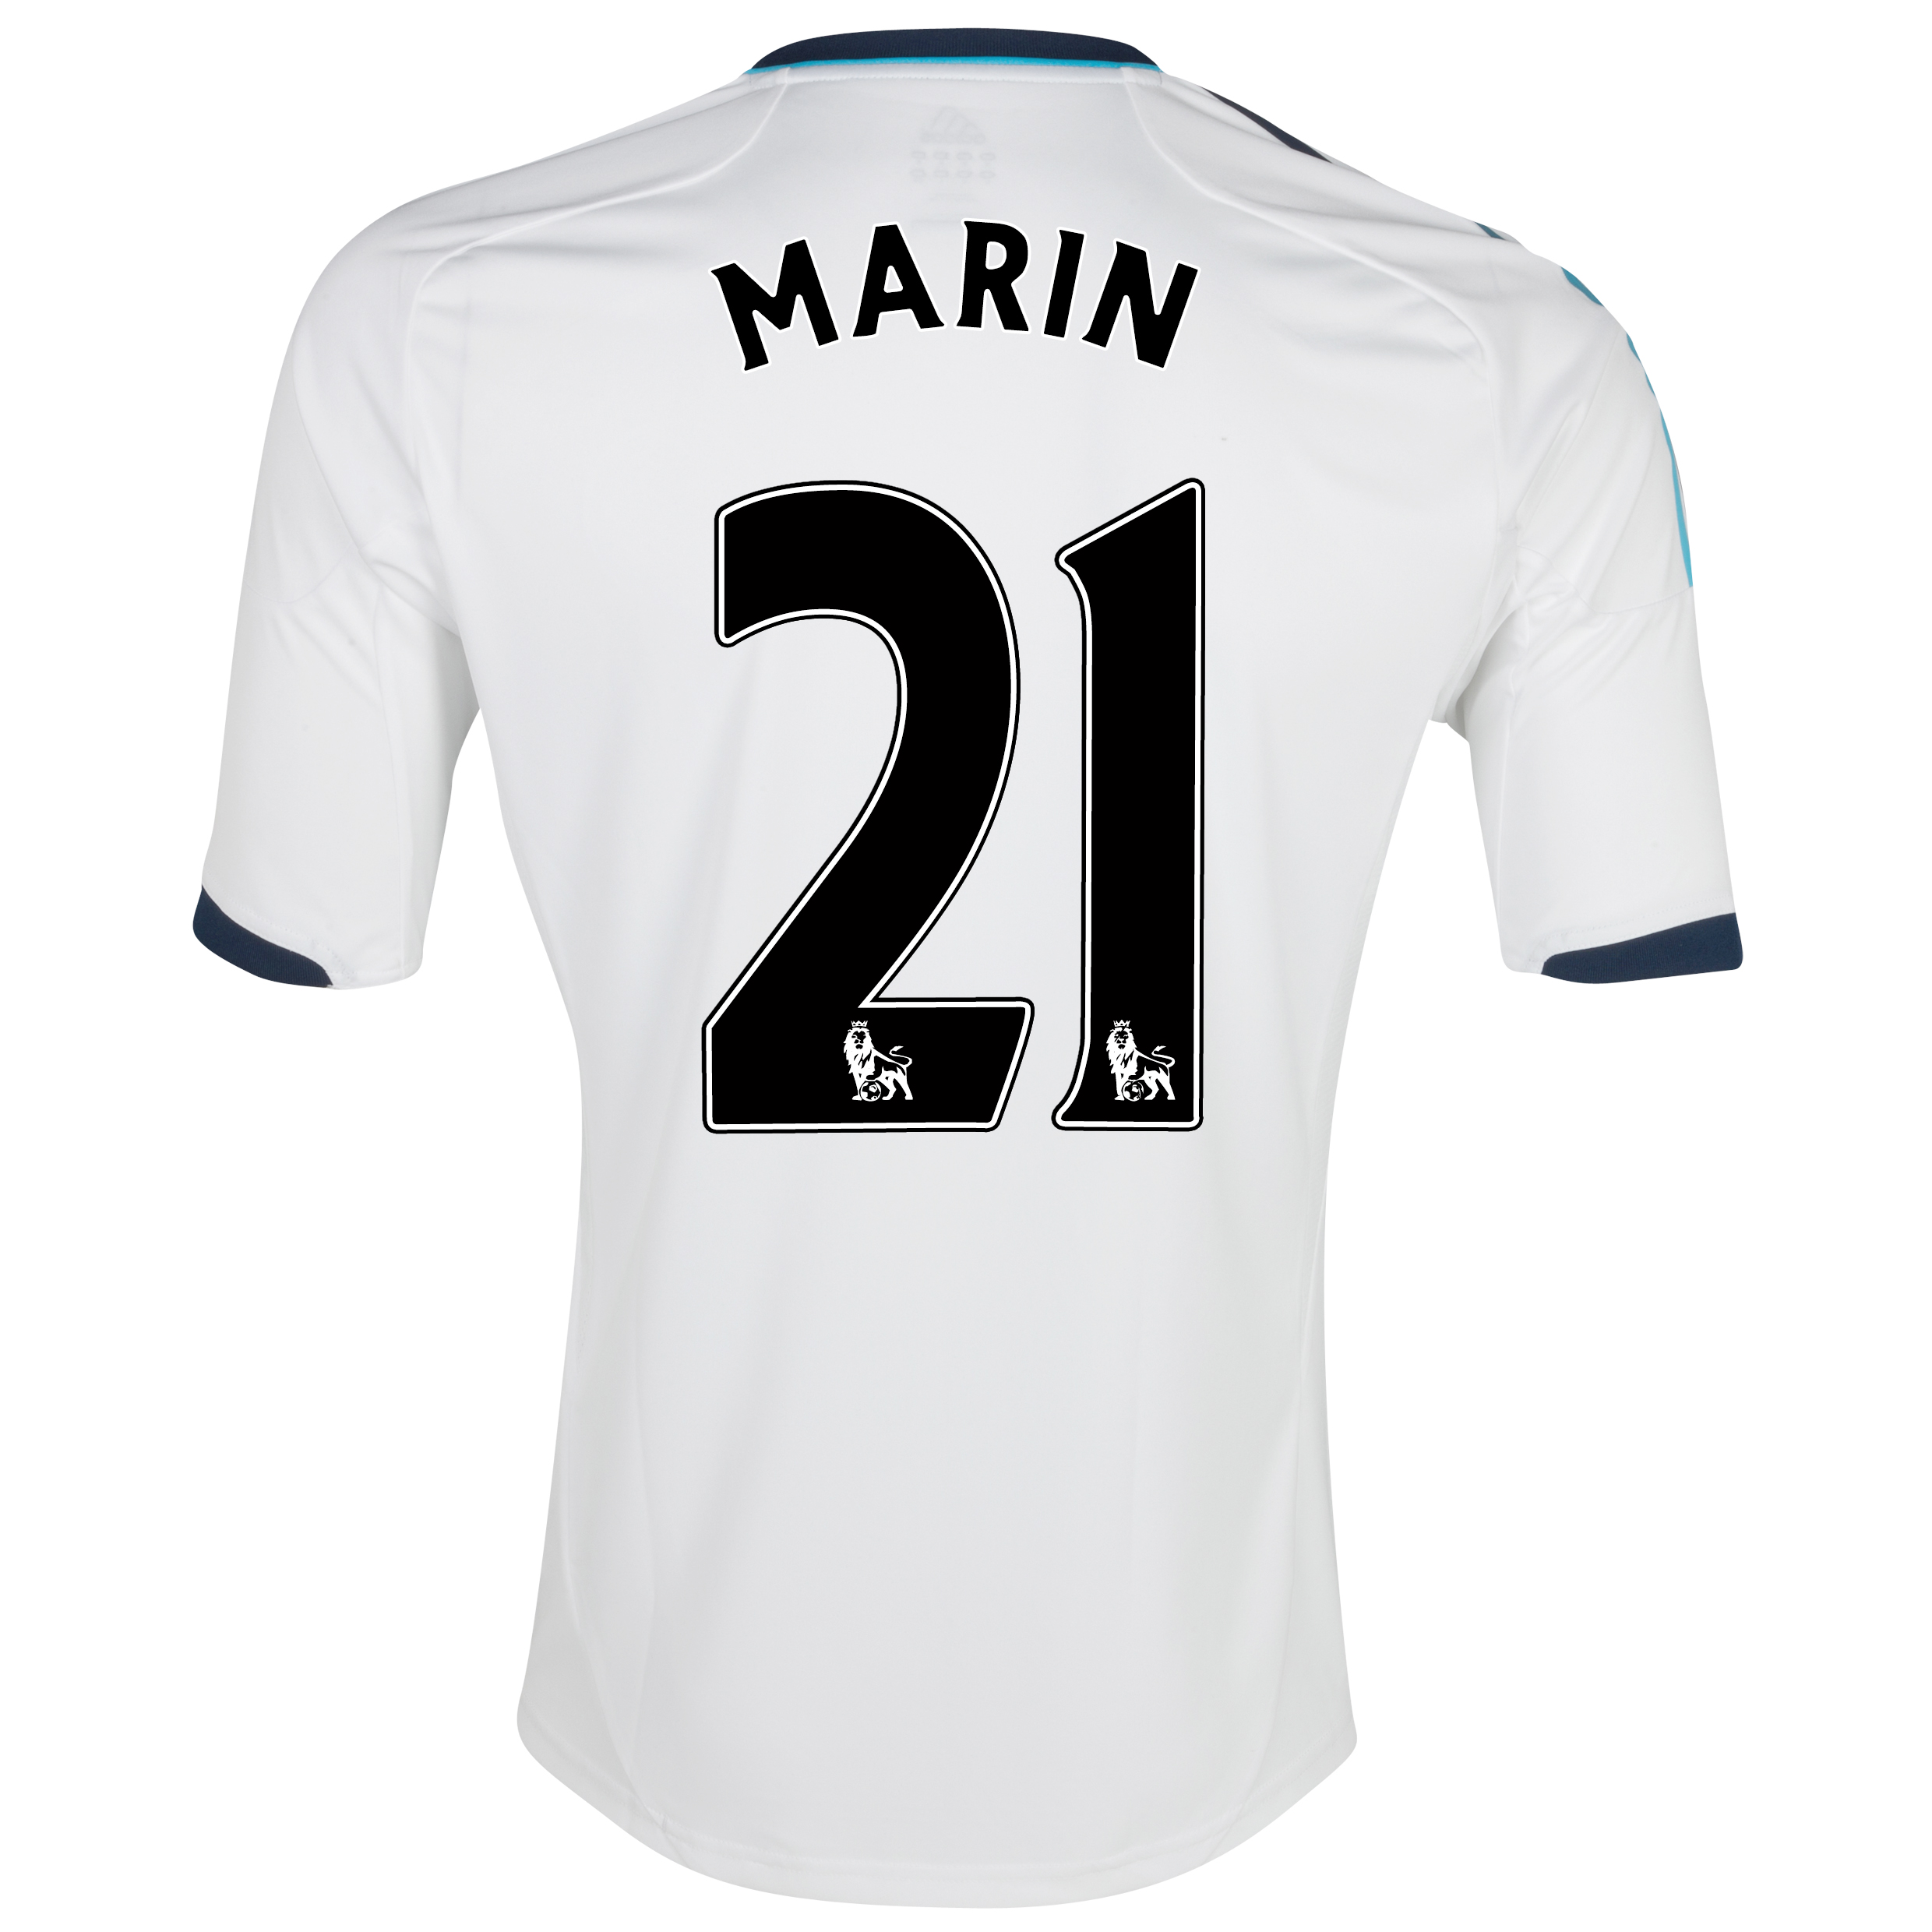 Chelsea Away Shirt 2012/13 with Marin 21 printing